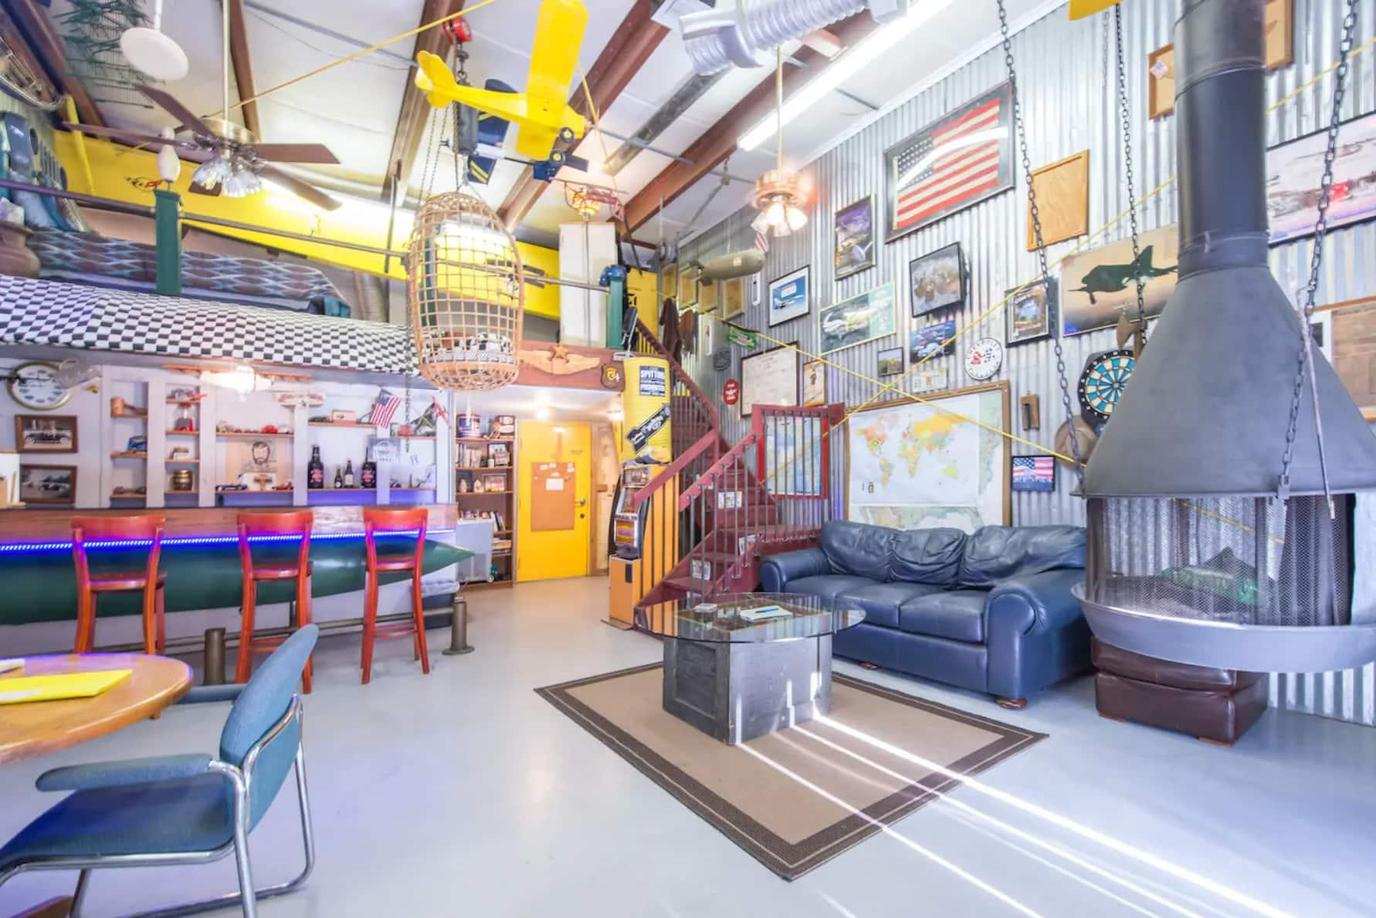 Man Cave, a Pet-Friendly Themed Vacation Rentals